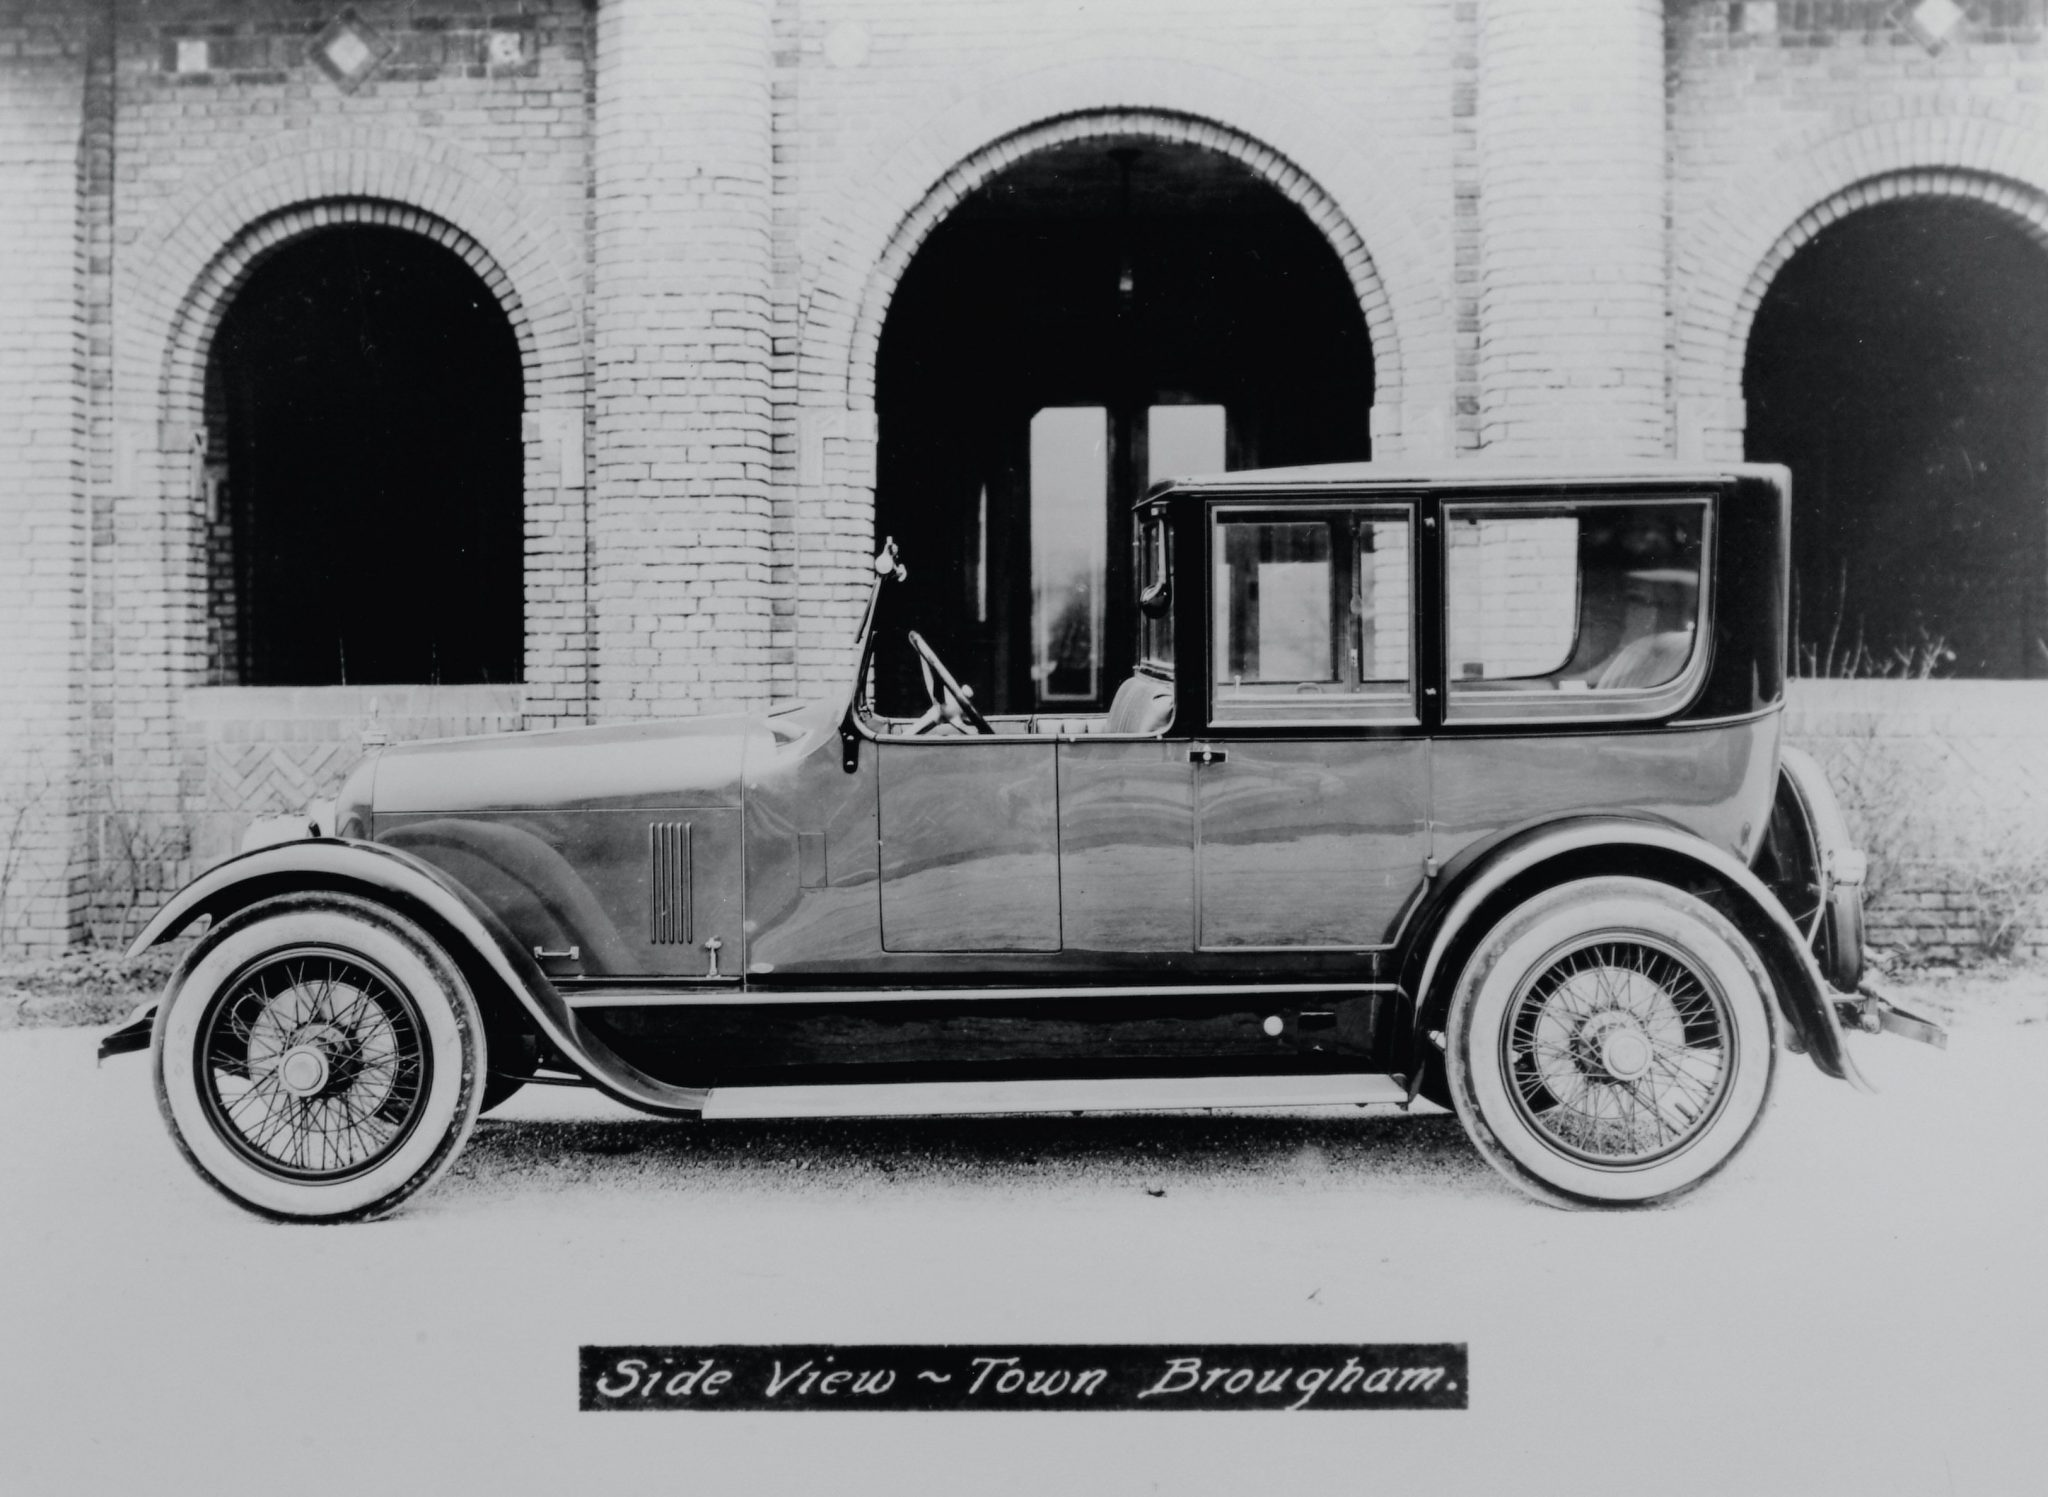 Town Car and Town Brougham models from 1921 and 1923 exhibit the truly luxurious styling the Duesenberg offered. Bodied by Fleetwood, and Millspaugh & Irish, the top-of-the-line models sold for a breathtaking $7,800 and $8,800 respectively. Only a few of the distinctive Town Cars were produced. The mixture of opera lights above the doors, and swiveling windshield lights were a unique combination. The Town Brougham, with open driver's compartment, was displayed on the Fleetwood stand at the 1921 New York salon.